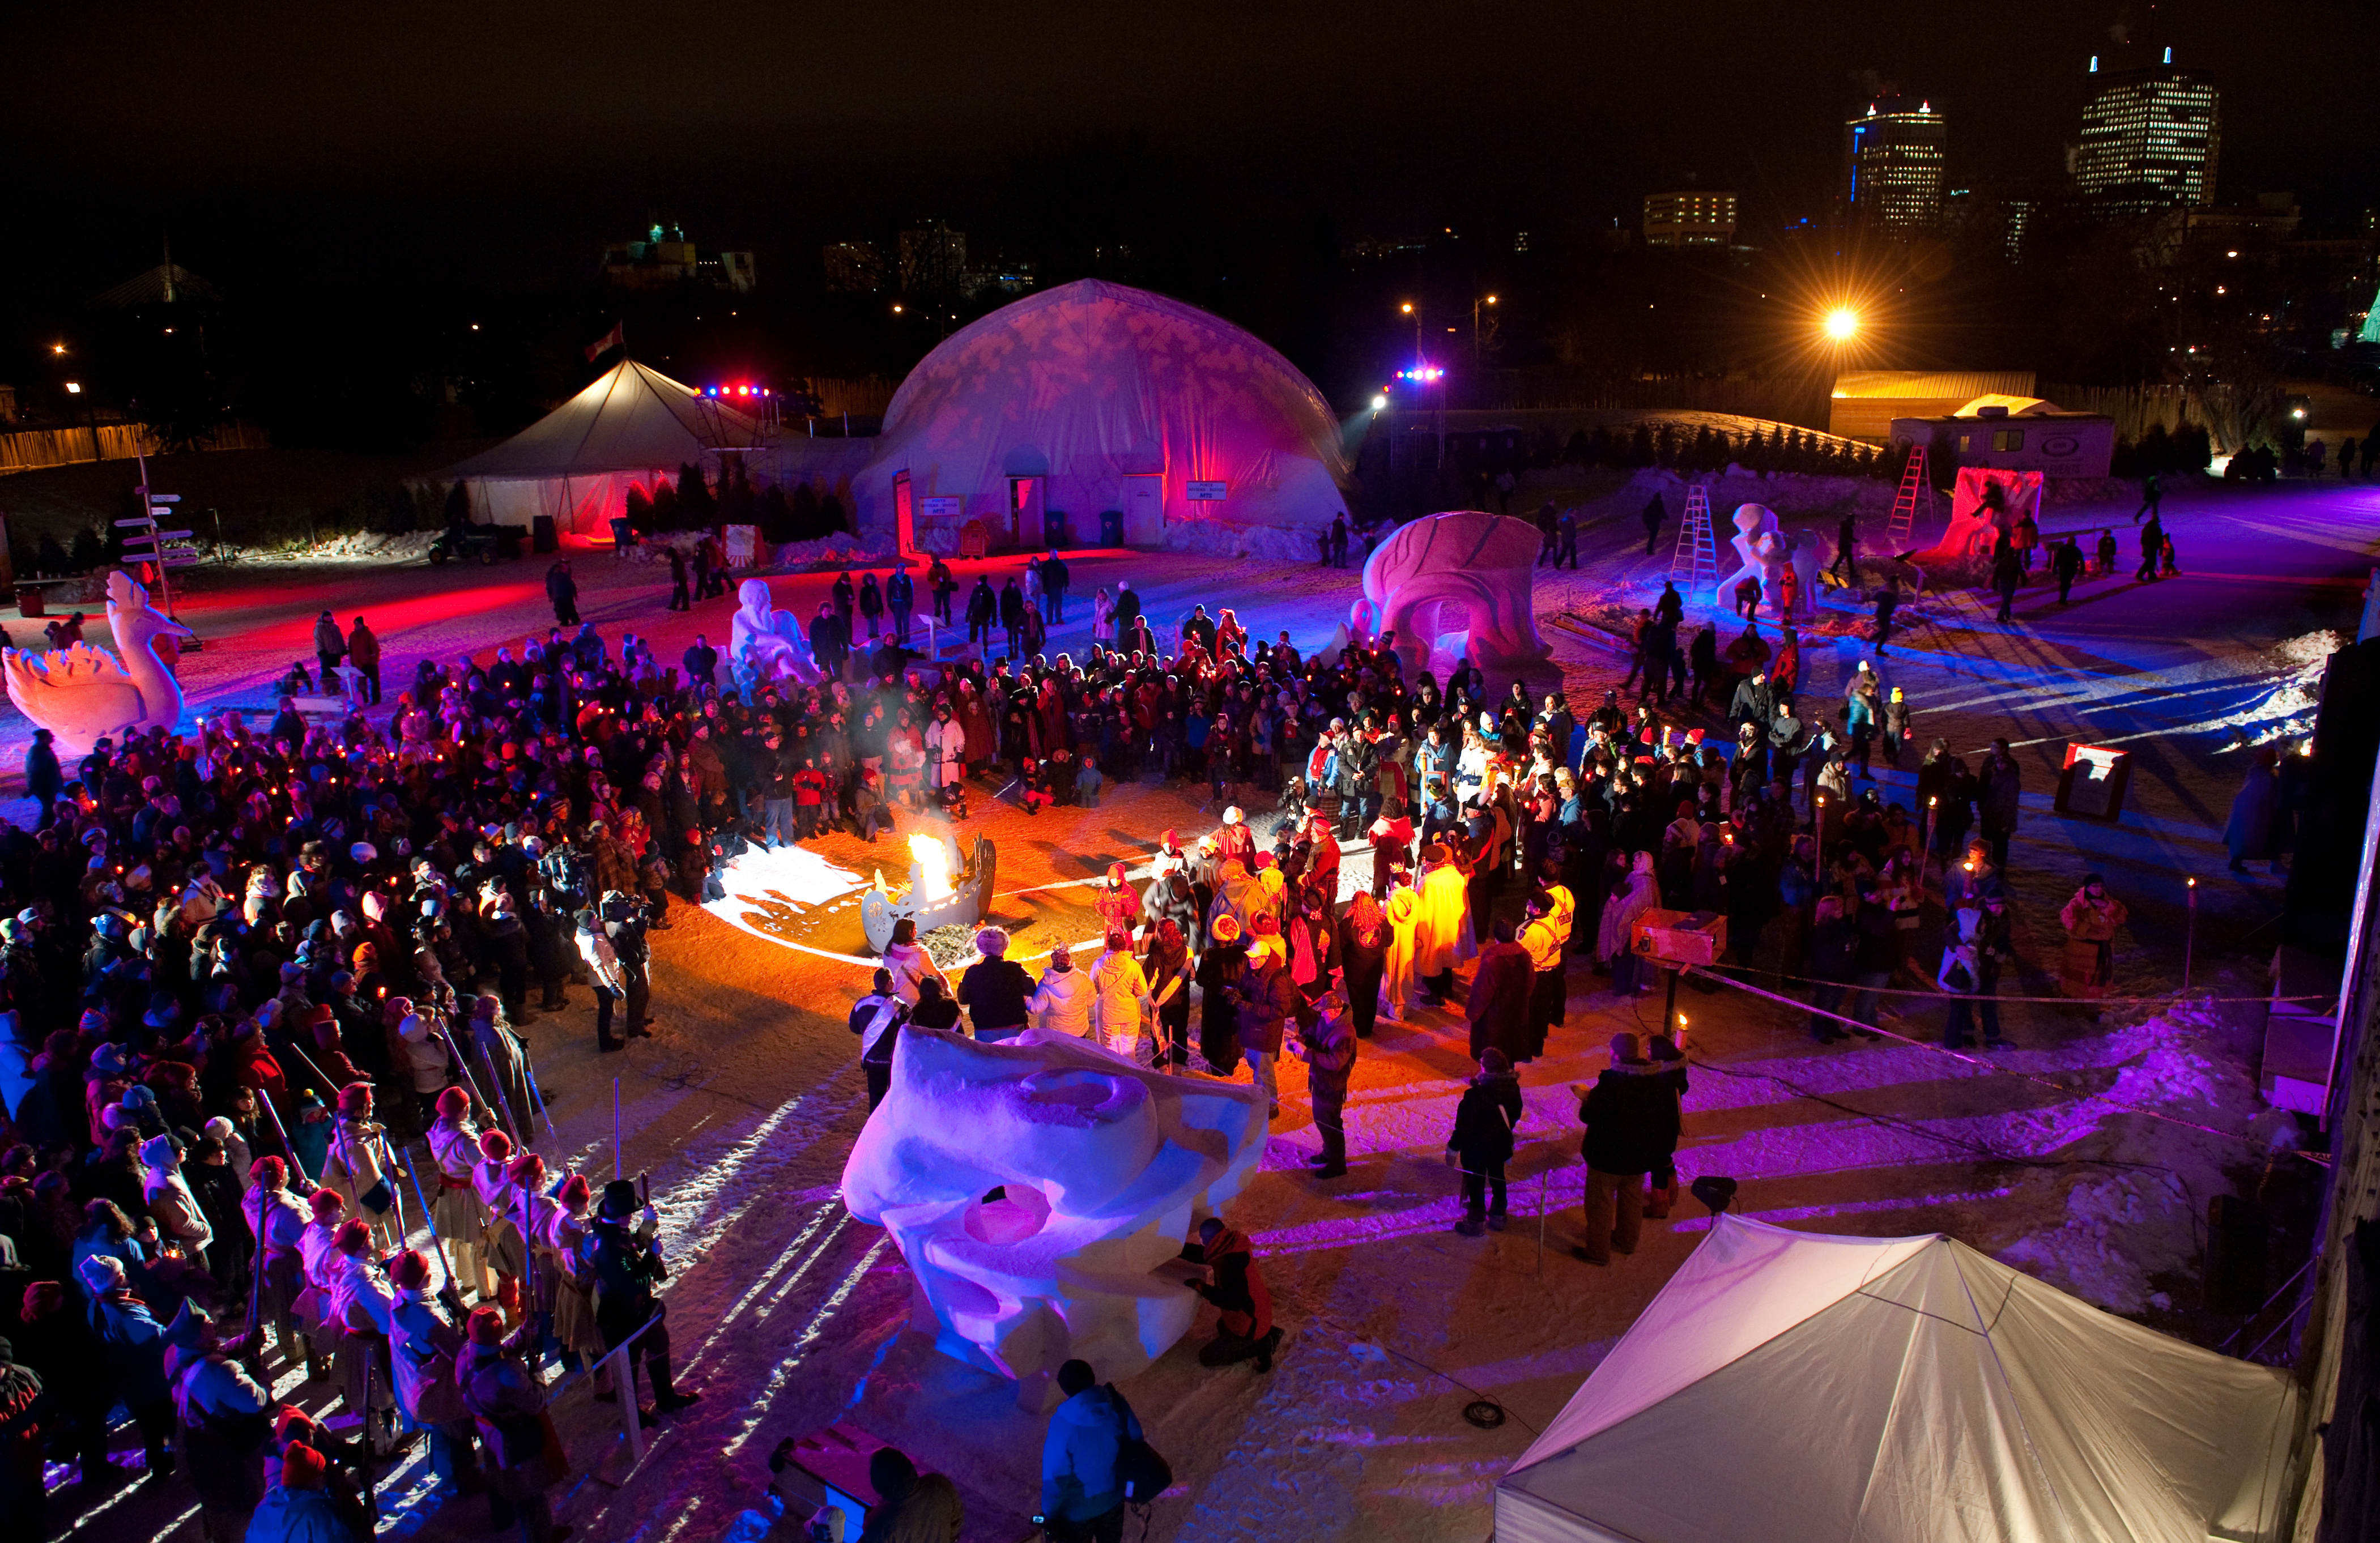 Festival du Voyageur is one of the things to do in Winnipeg in winter